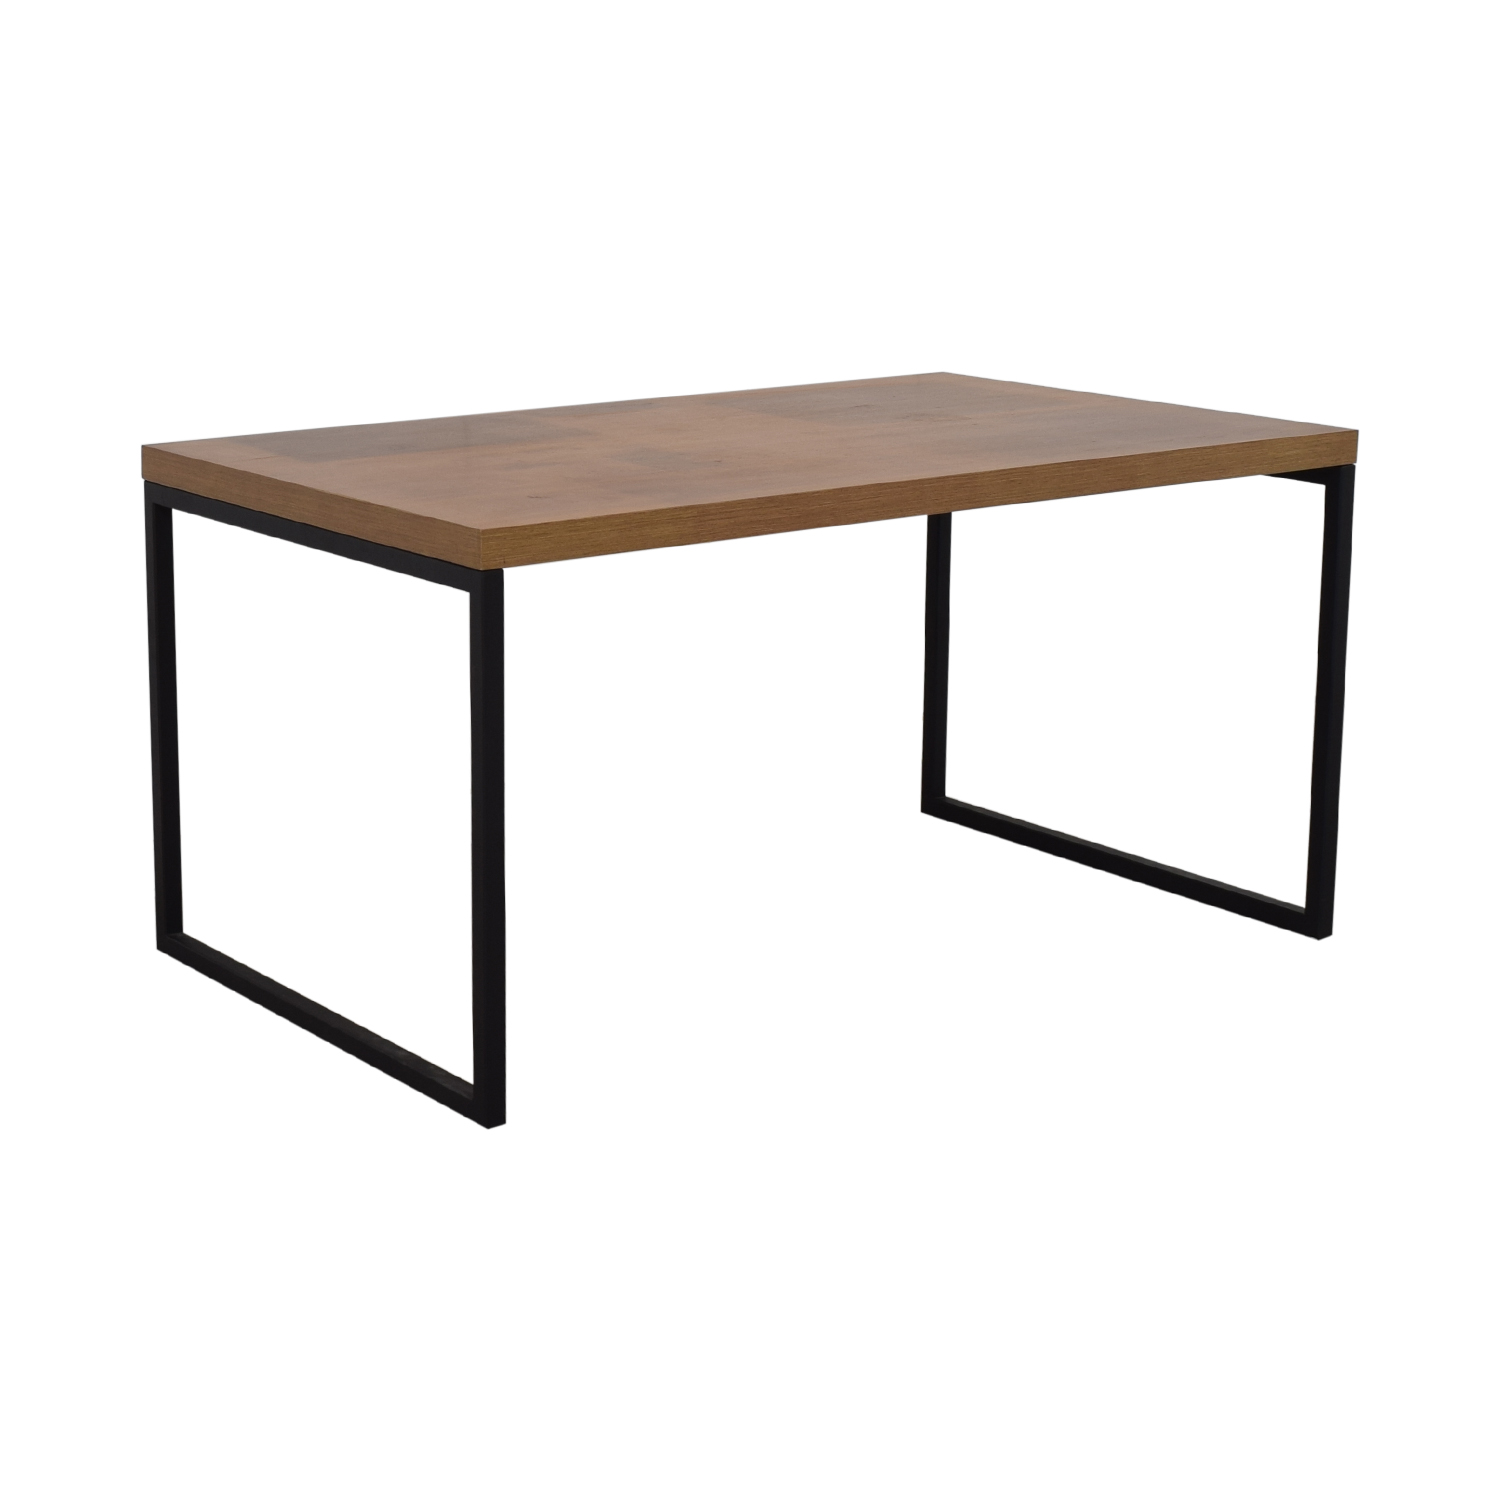 Modern Dining Table dimensions